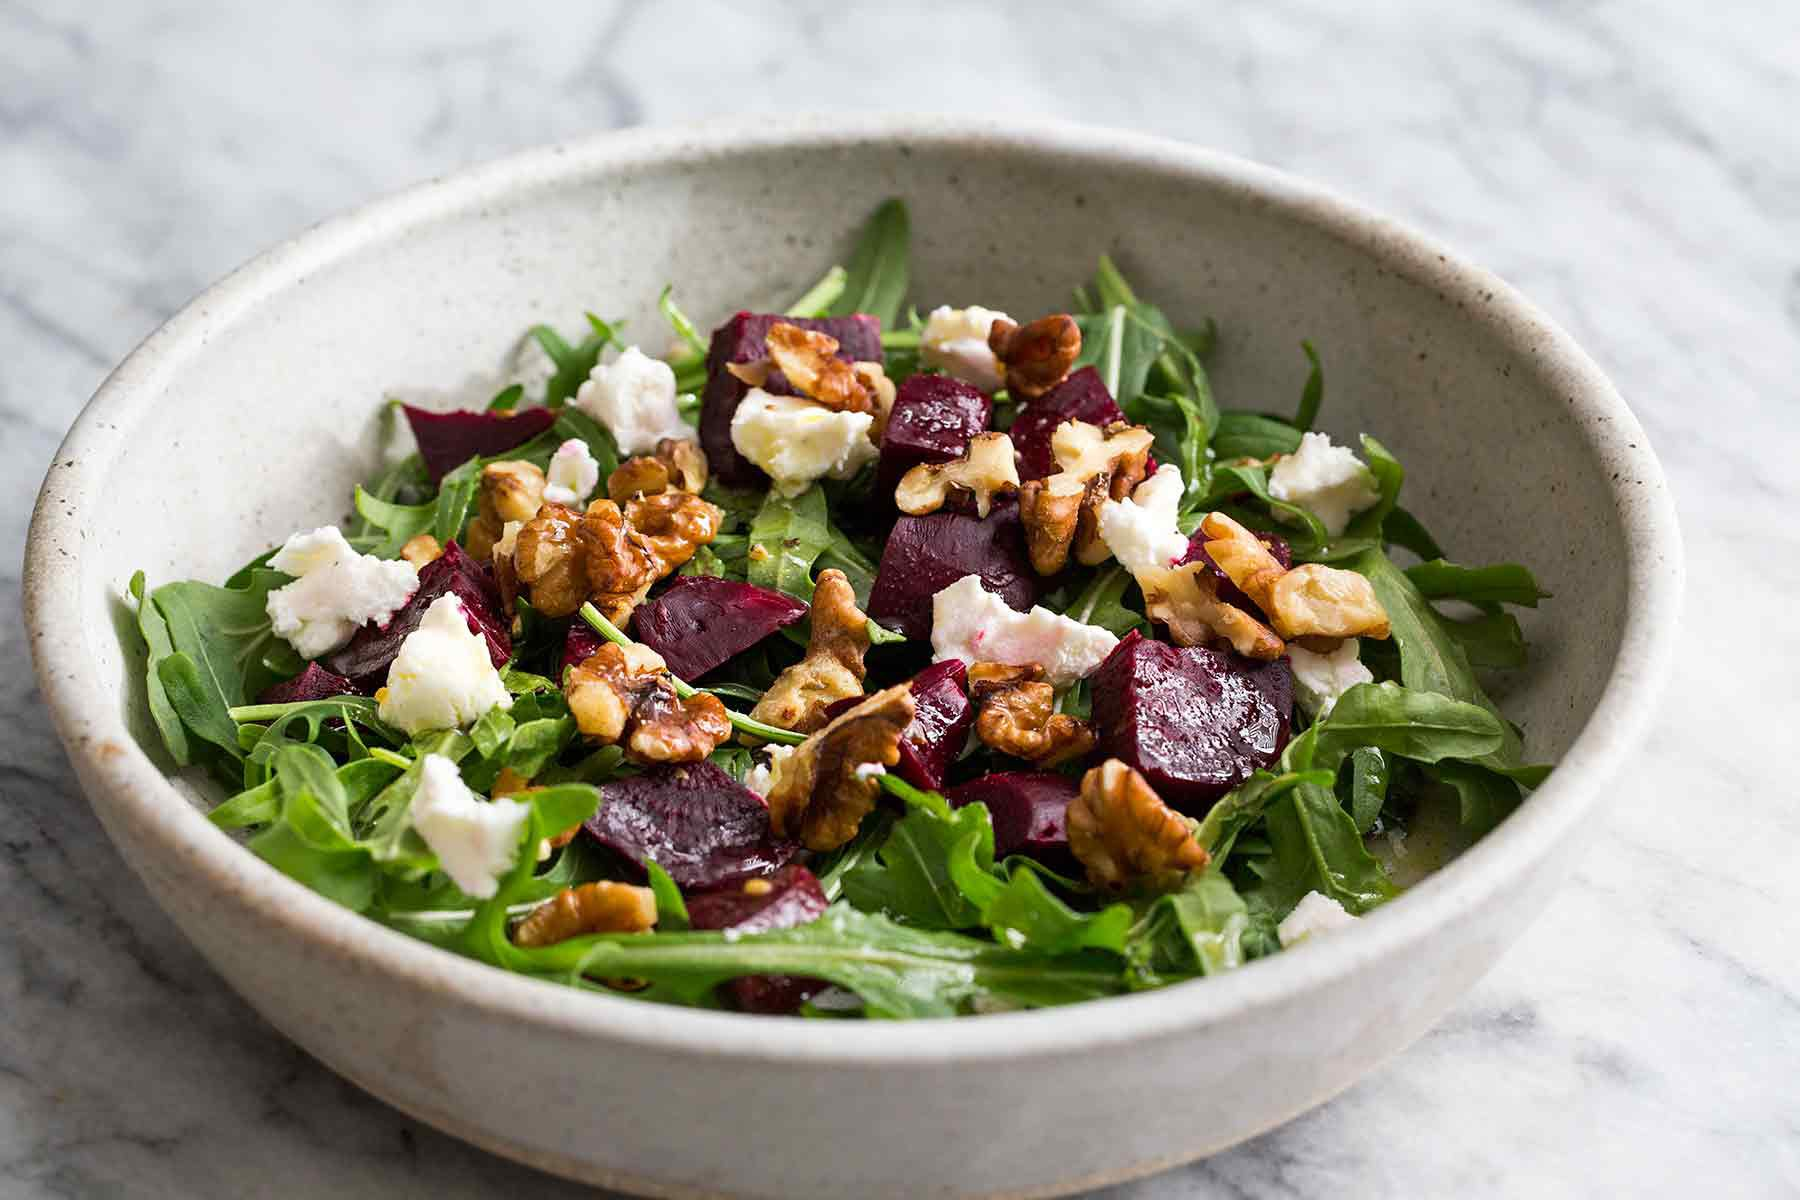 Arugula Salad with Beets and Goat Cheese in a bowl